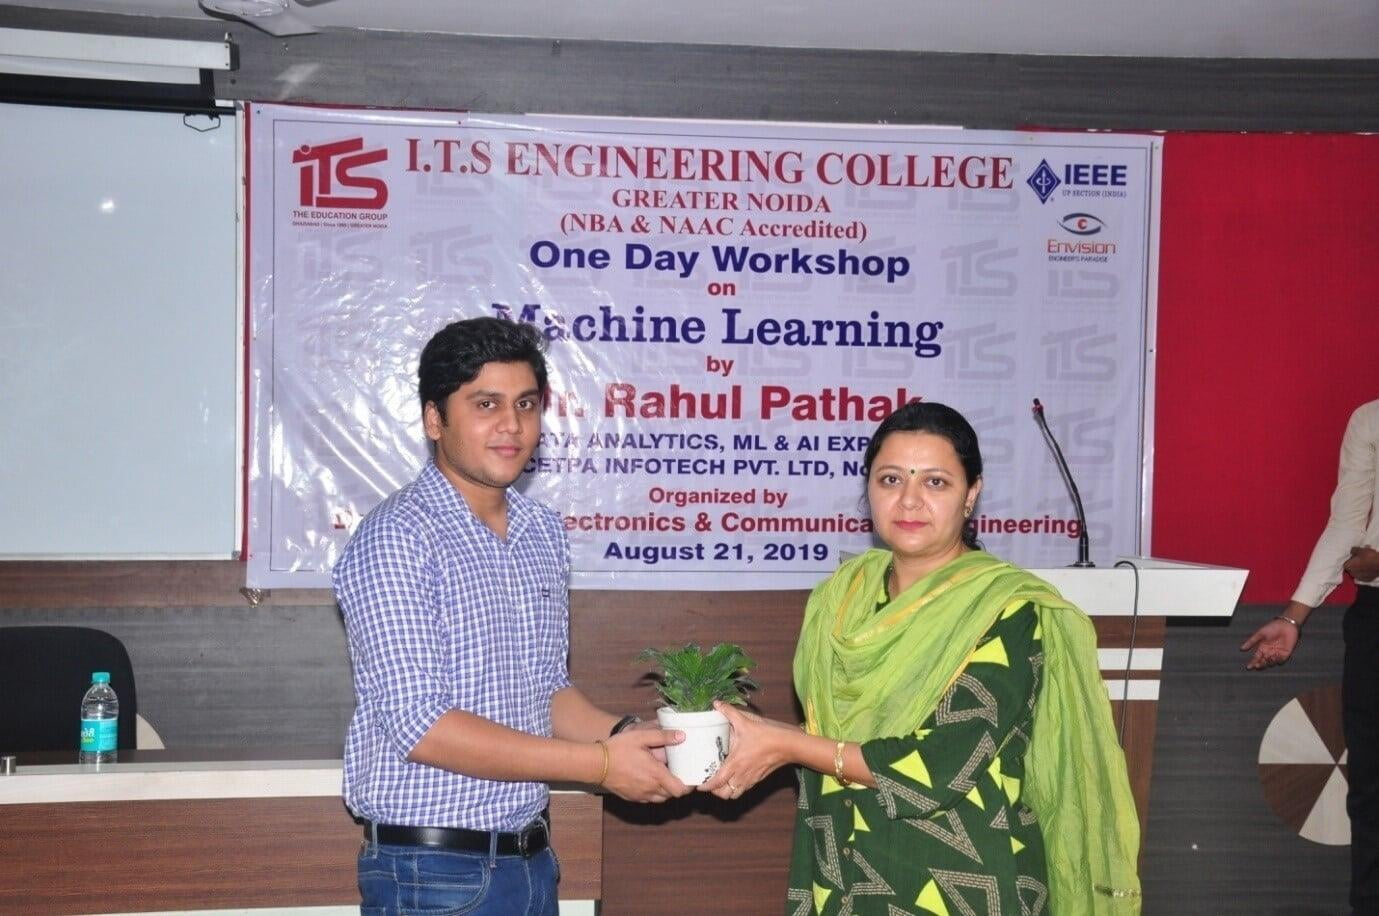 Machine Learning Workshop for ECE Students at ITS